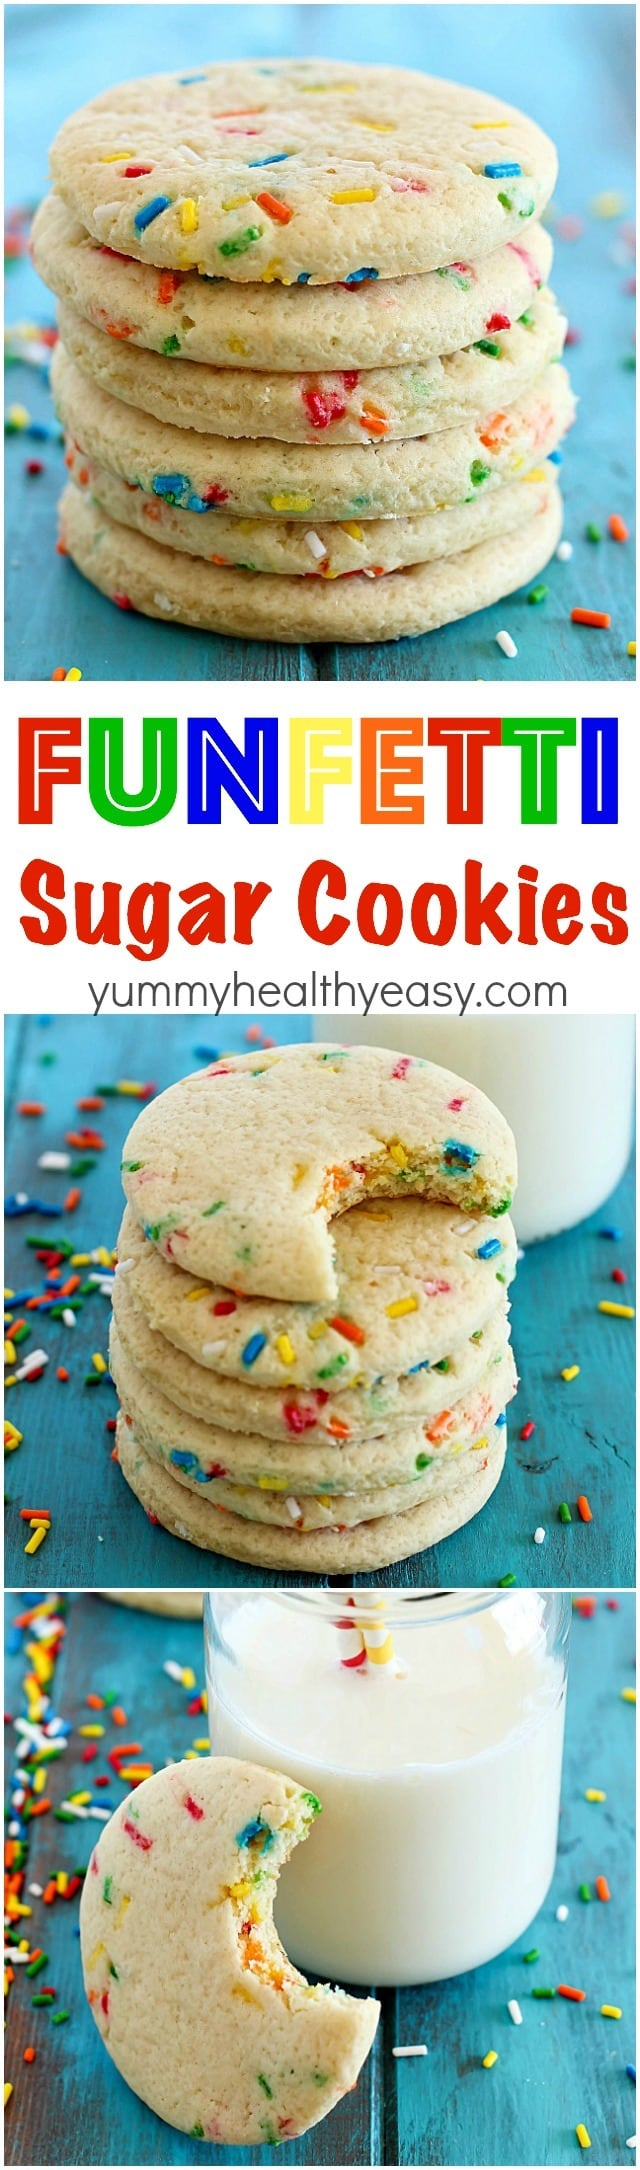 Funfetti Cookies to celebrate a special day! This is honestly the BEST sugar cookie recipe I've EVER had. They're soft, buttery and the sprinkles add just the right amount of crunch and sweetness! Great with or without frosting.